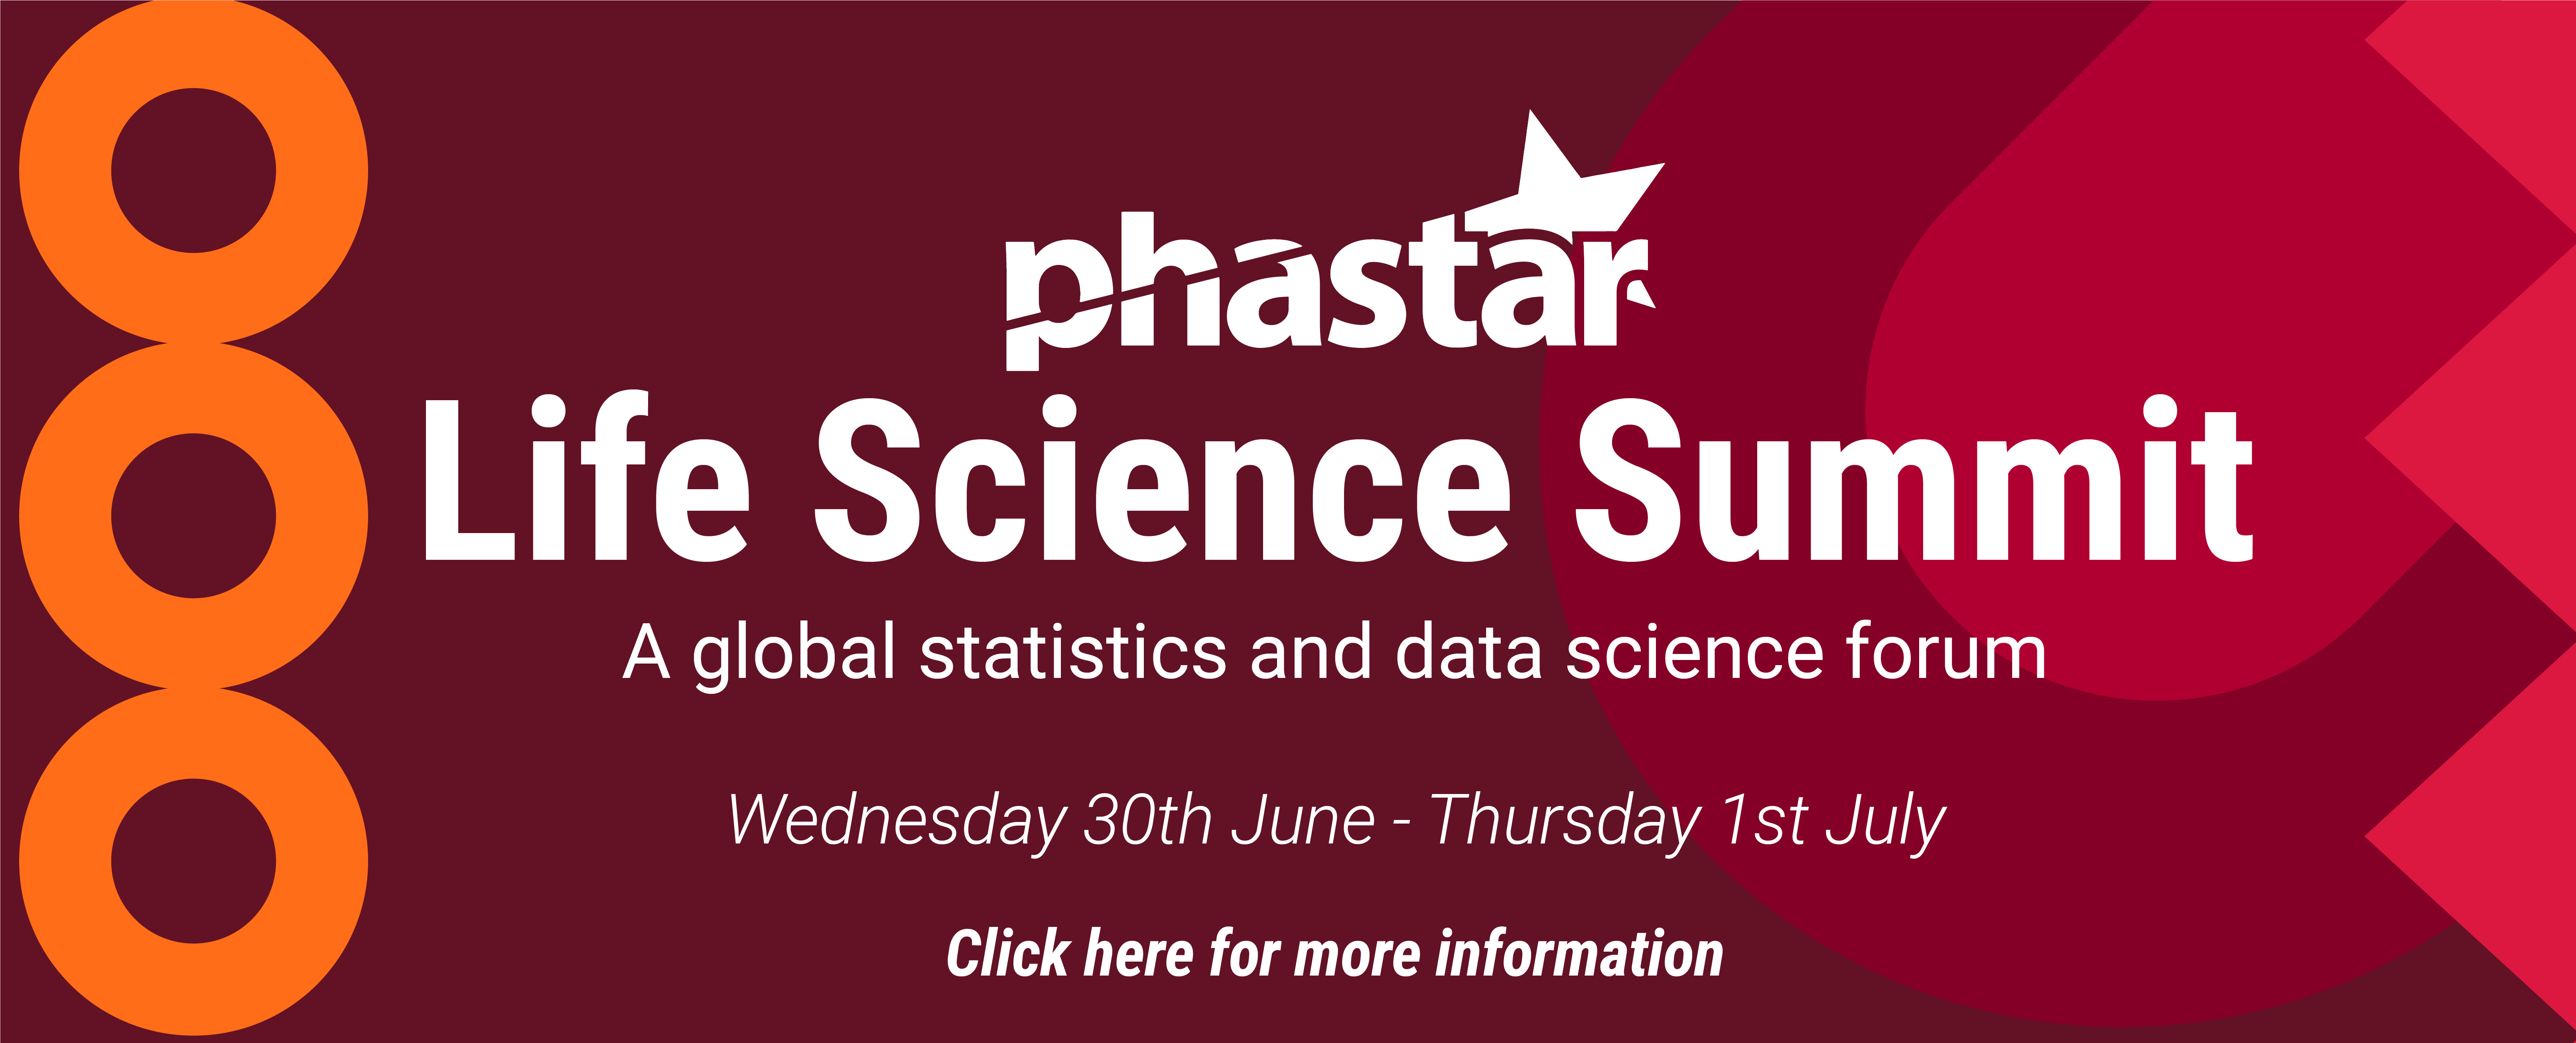 Join PHASTAR's Life Science Summit